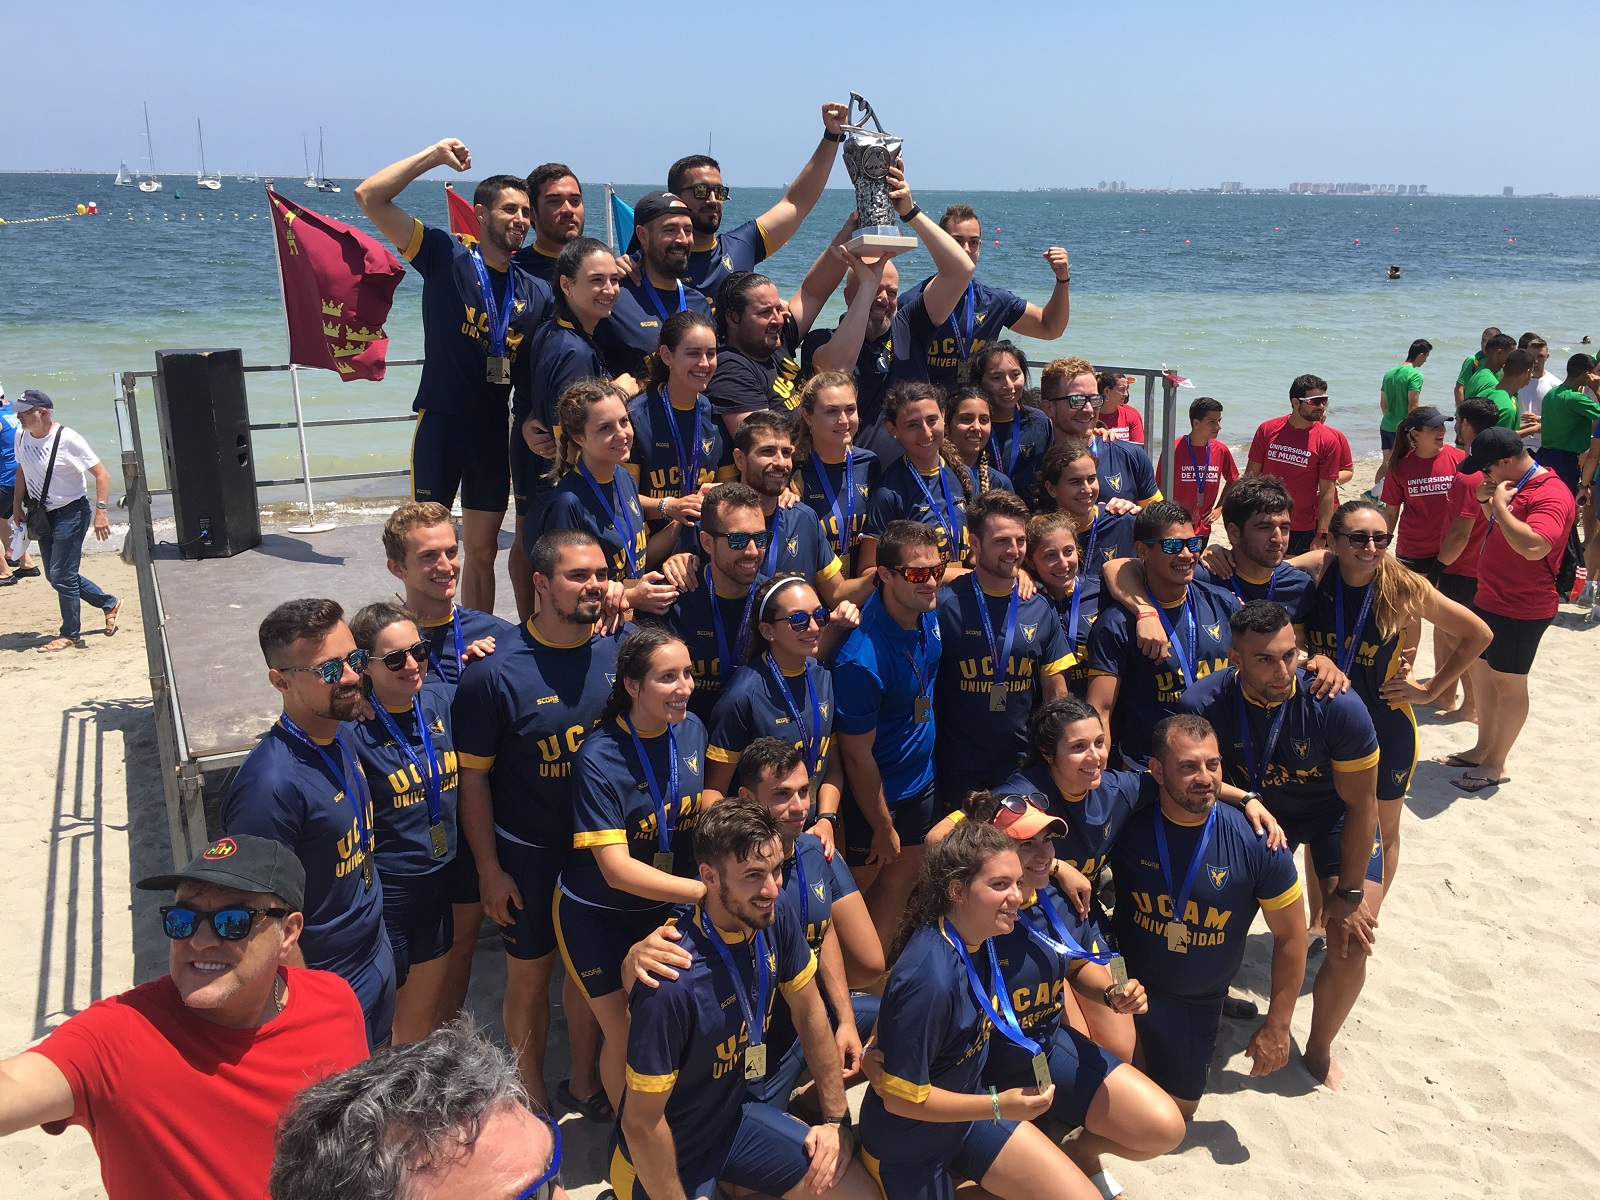 San Antonio Catholic University UCAM celebrate winning the XX edition of the Inter Universities Regatta.